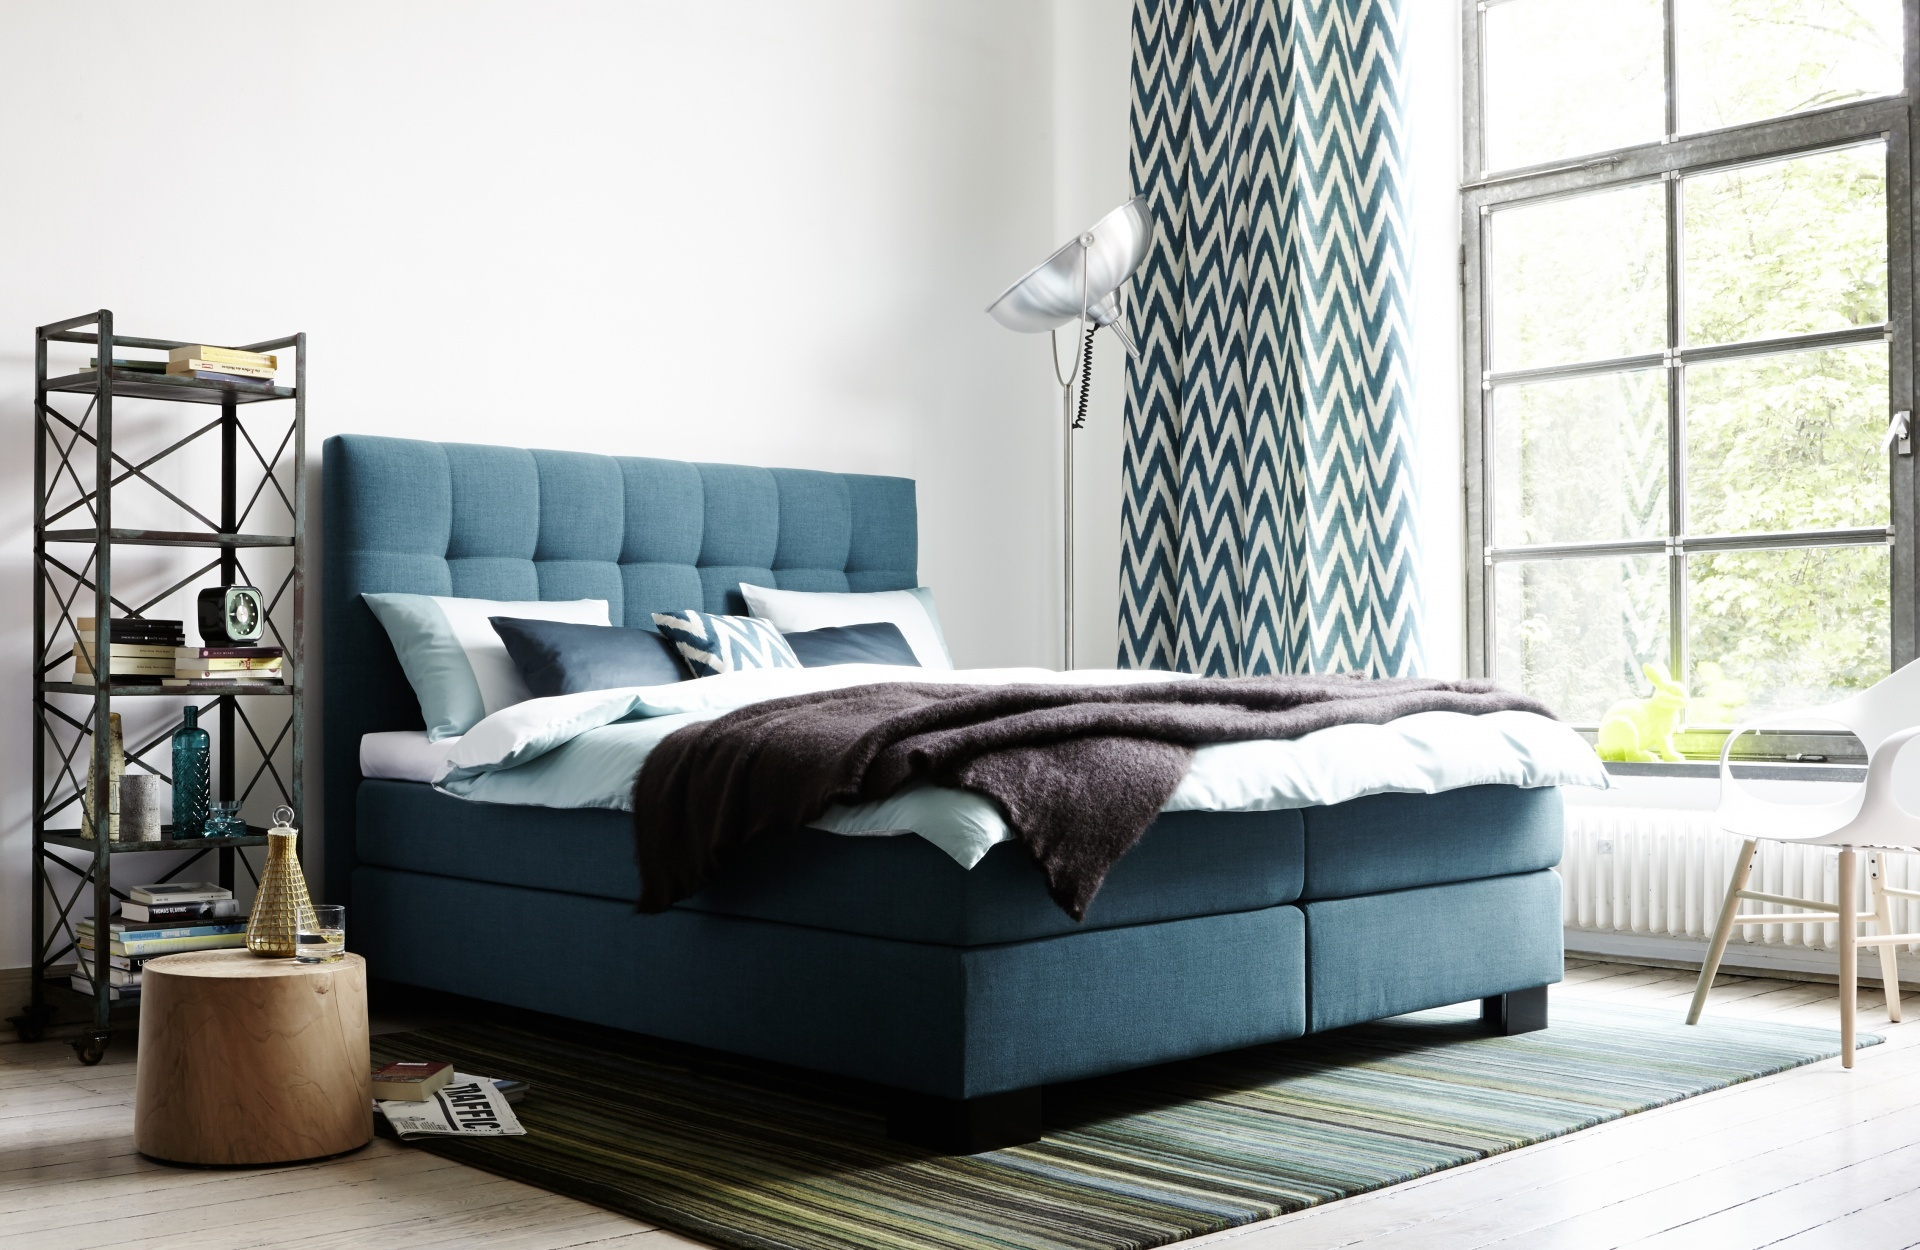 superba einrichtungstipps. Black Bedroom Furniture Sets. Home Design Ideas